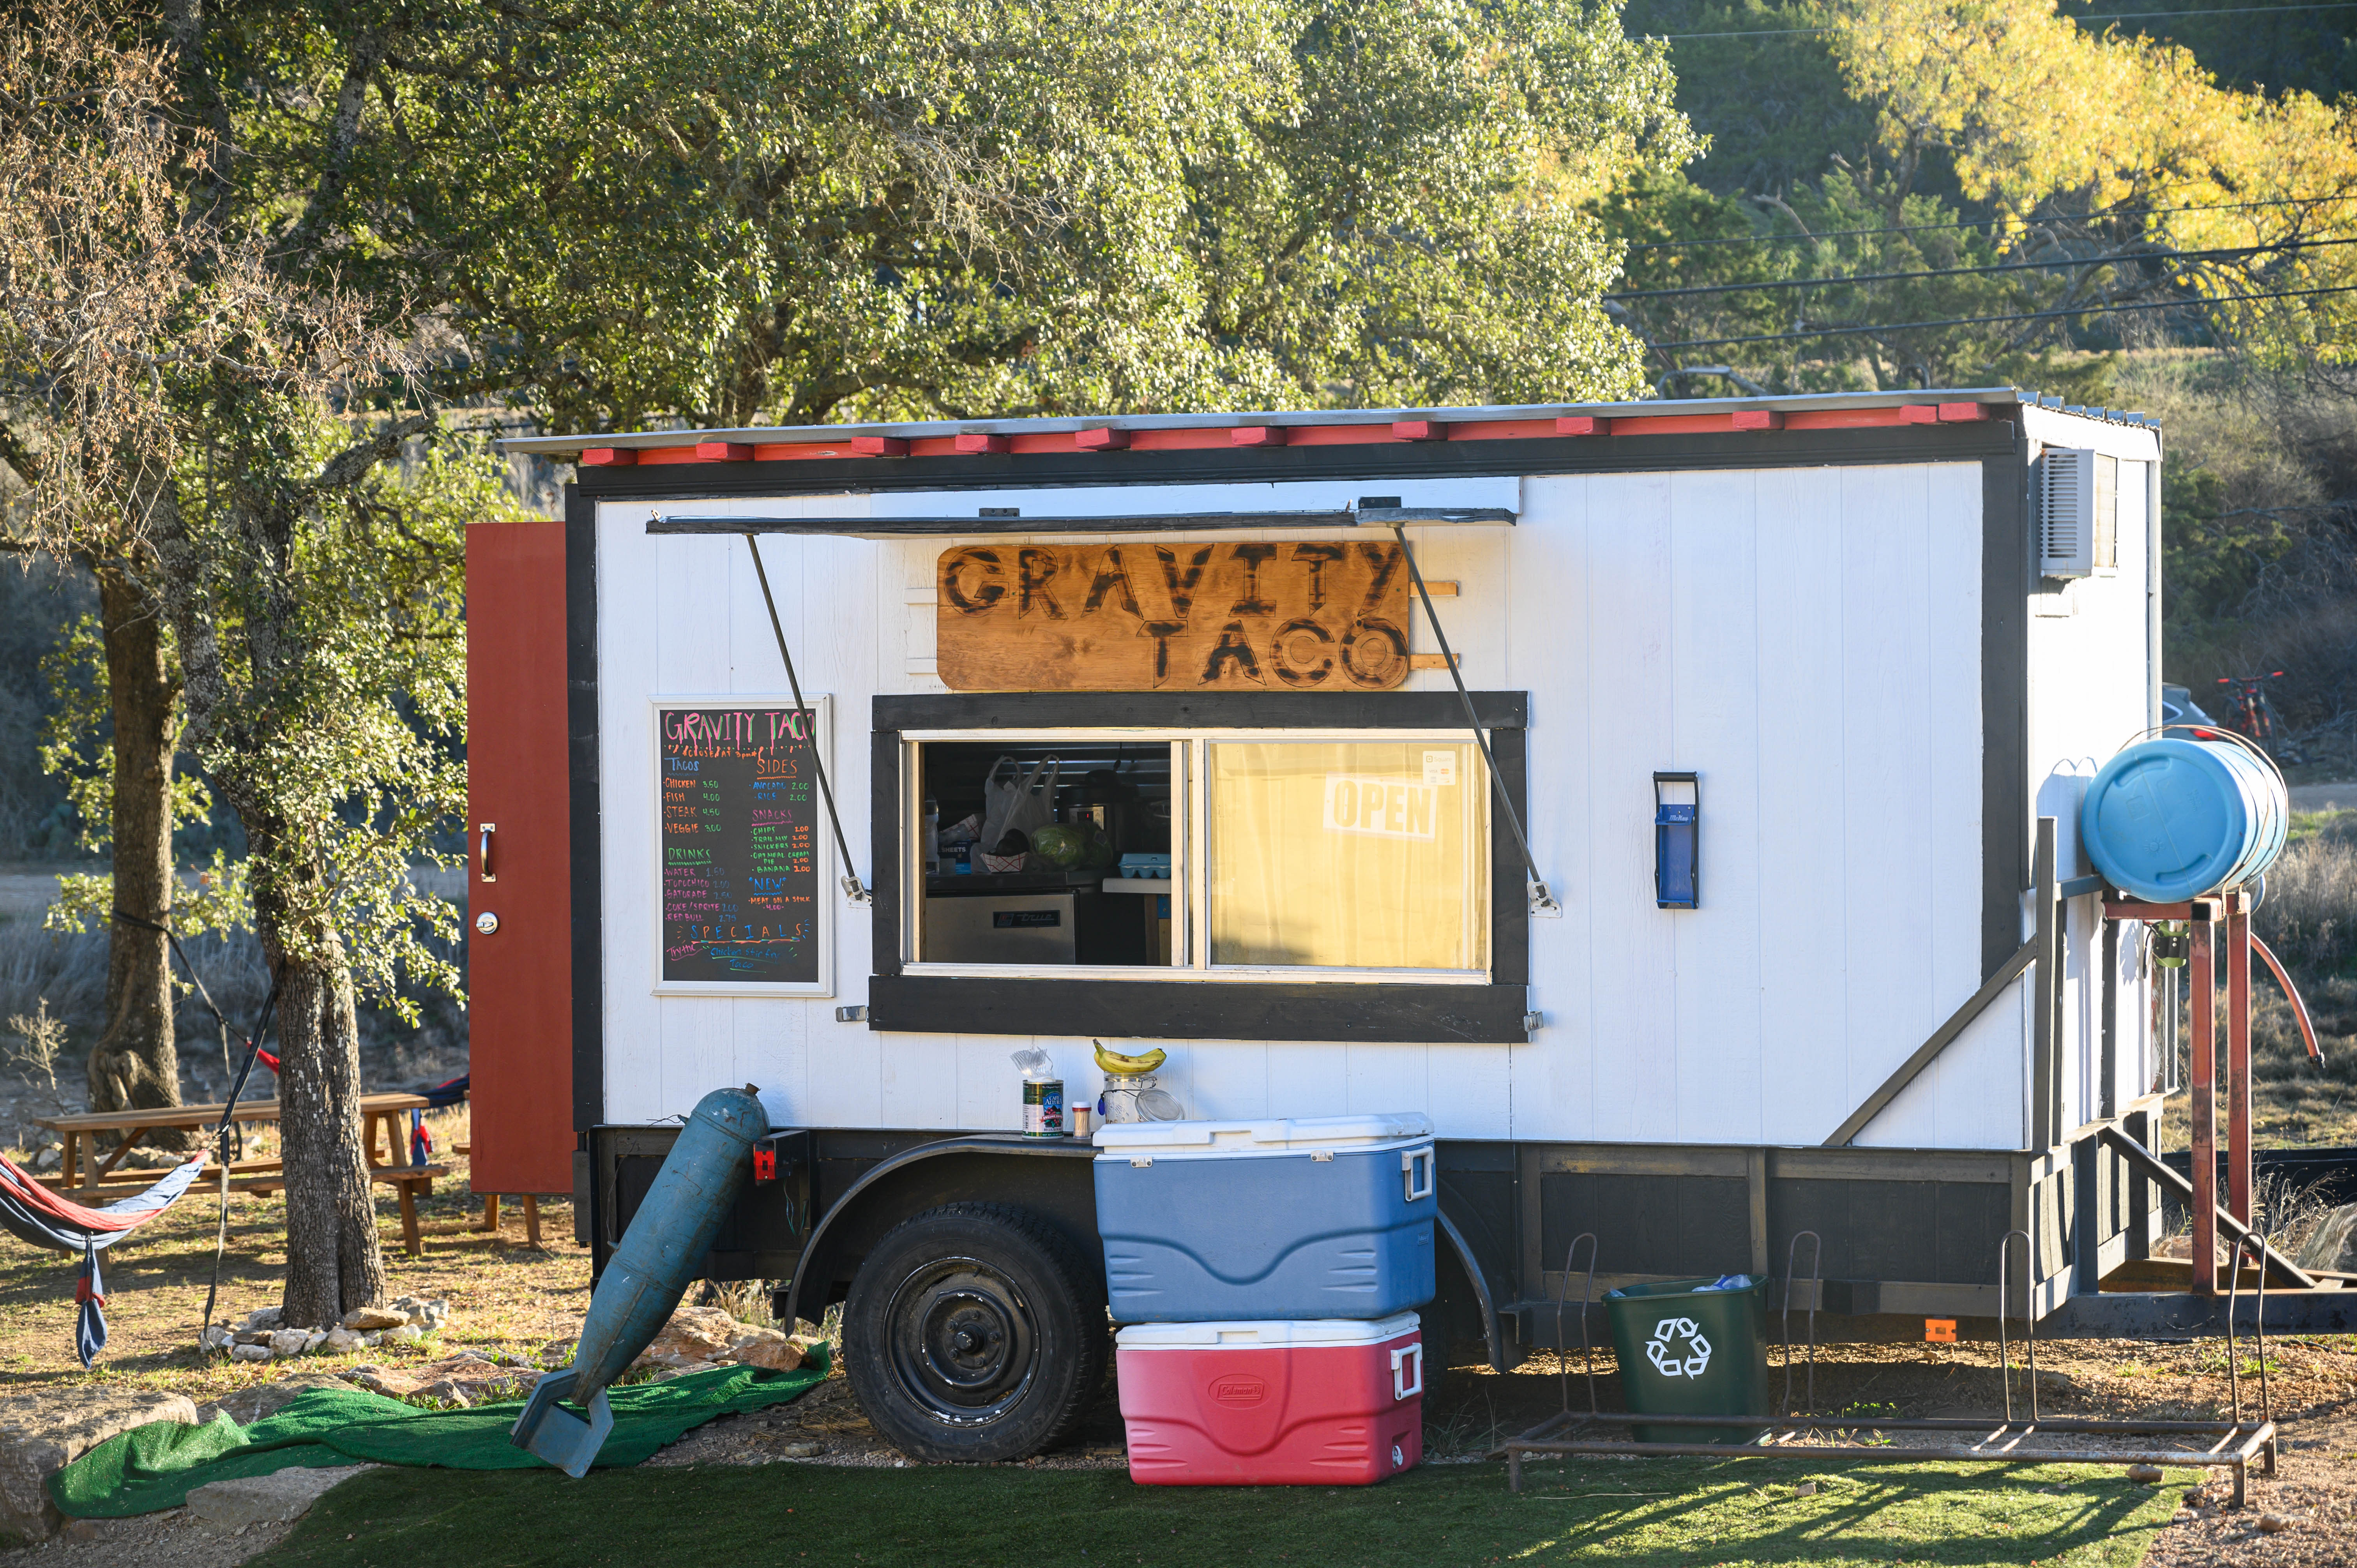 Gravity Taco may be the only food option, but luckily it's on par with the Texas food truck taco scene. Look for original taco specials like the Chow Mein Chicken tacos we had, which were good enough to opt for the following day, too.